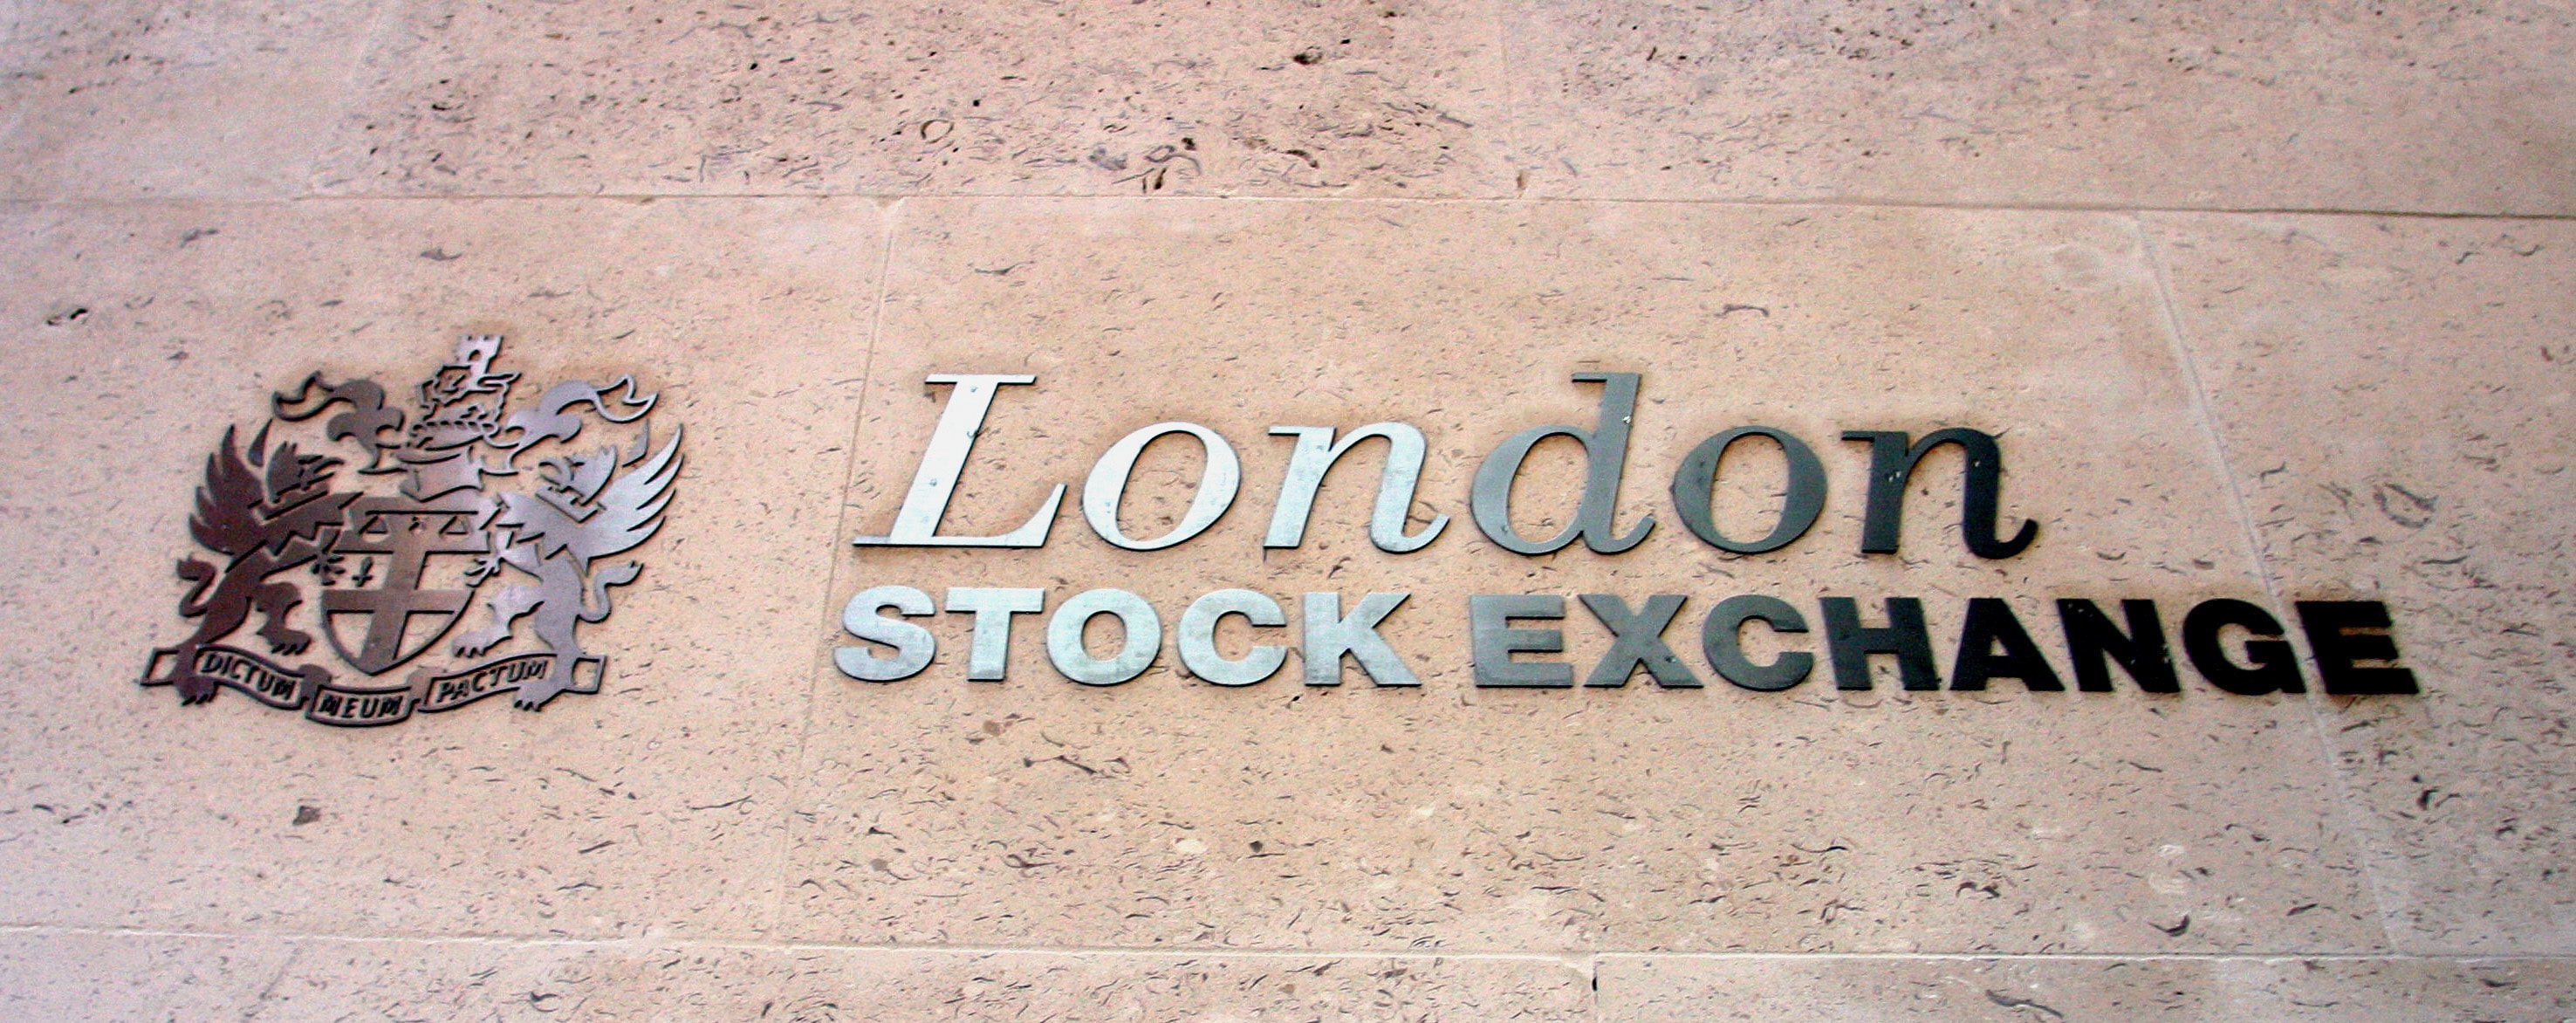 TechFinancials Shares Now Trading on London Stock Exchange AIM as TECH